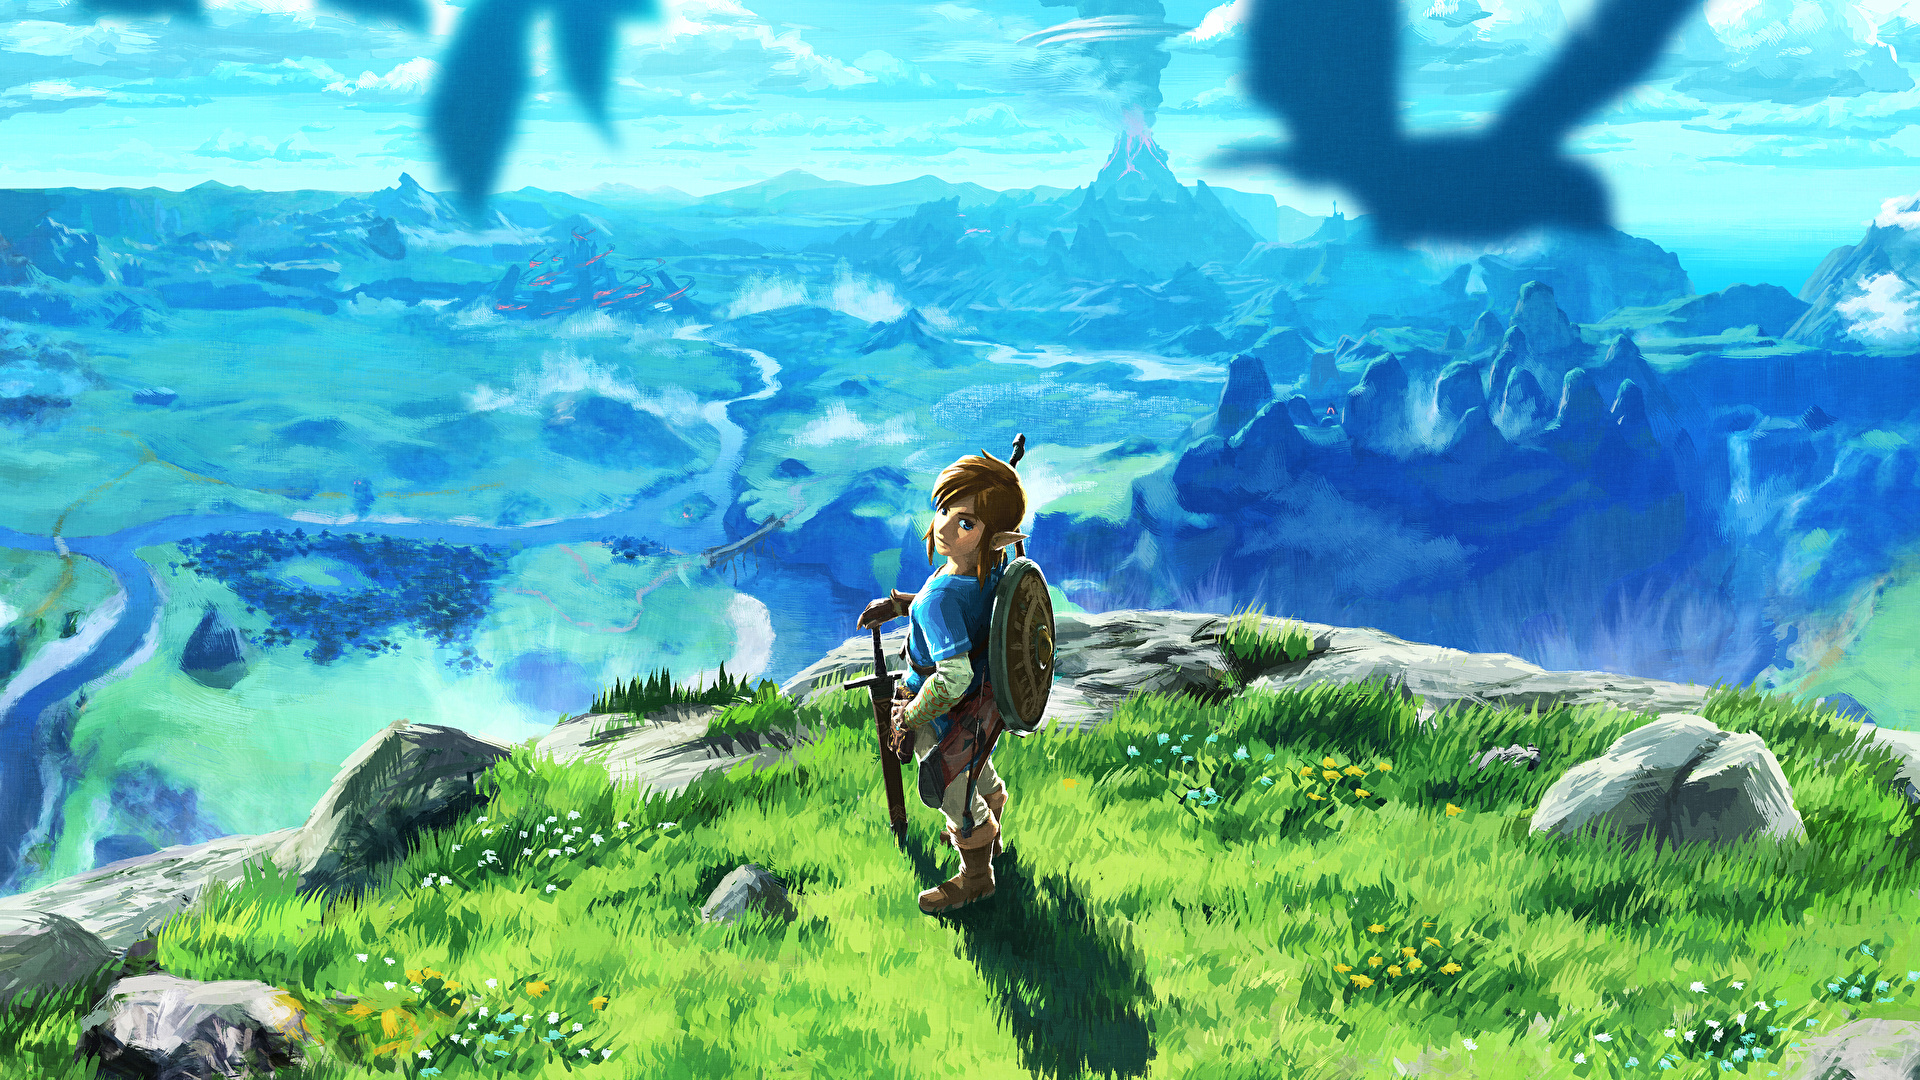 Image The Legend Of Zelda Warrior Breath Of The Wild 1920x1080